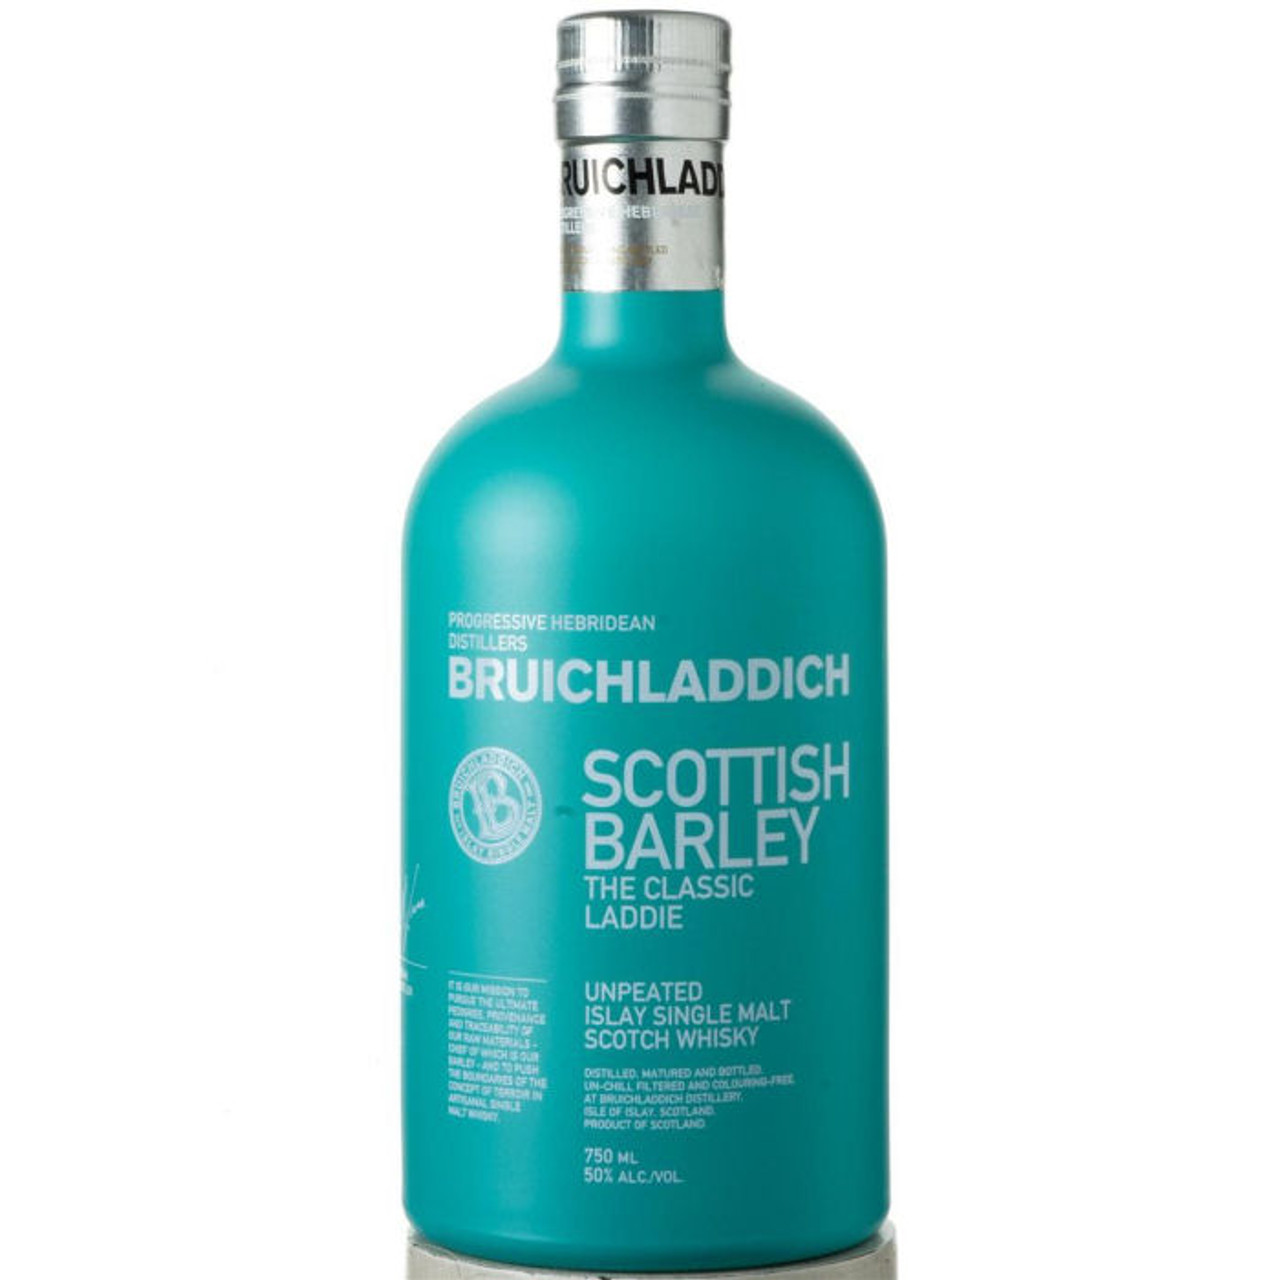 Bruichladdich The Classic Laddie Islay Single Malt Scotch 750ml